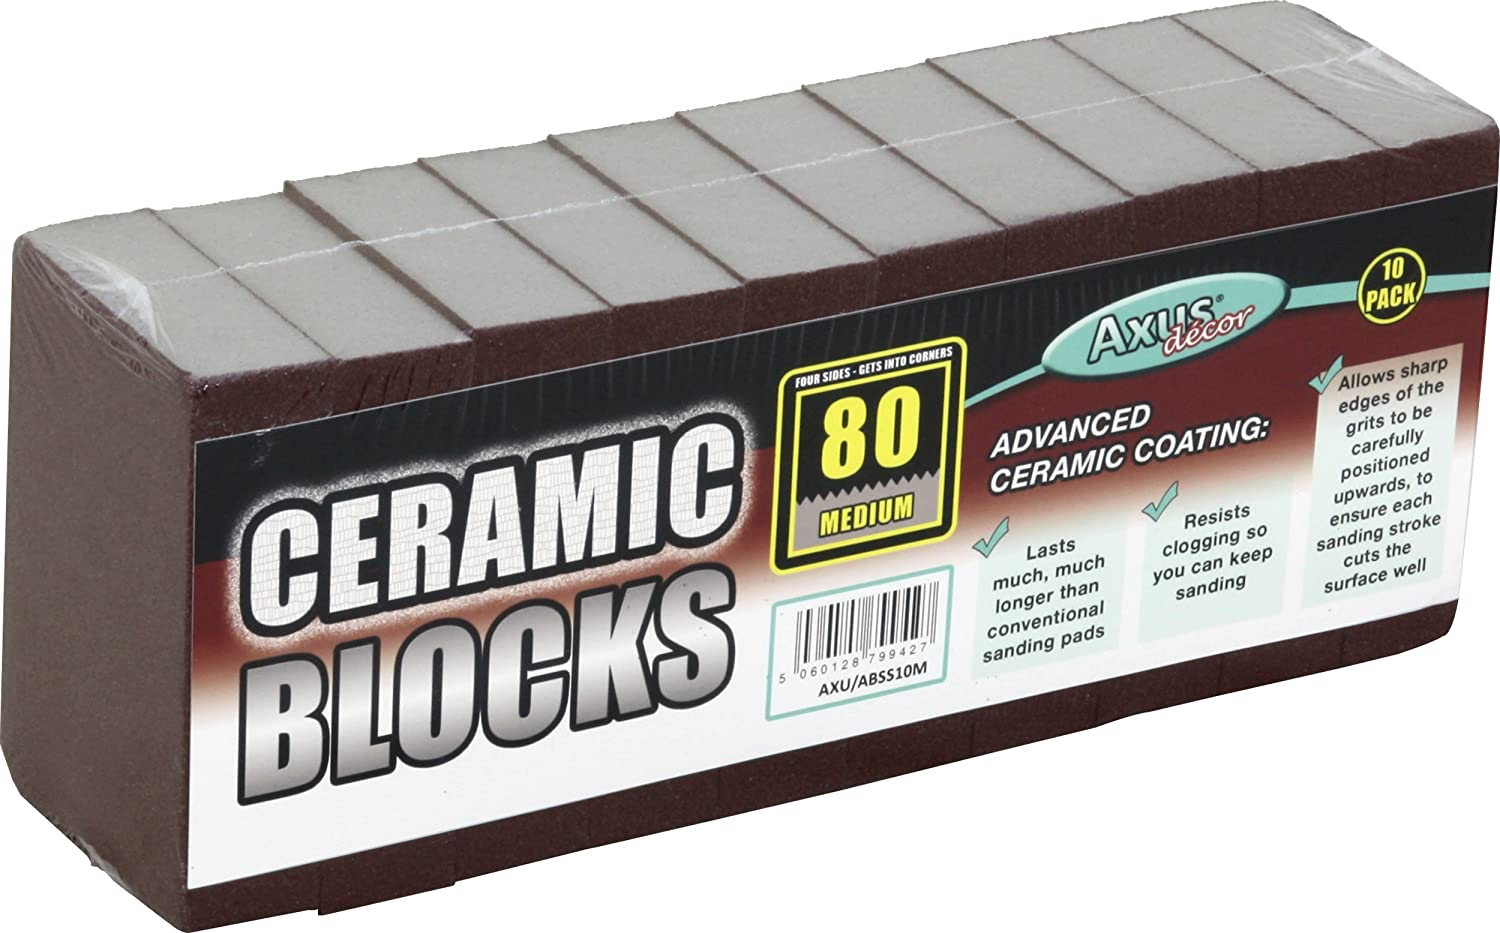 Axus Decor AXU/ABCB10M 80-Grit Ceramic Block (Pack of 10) Axus Décor